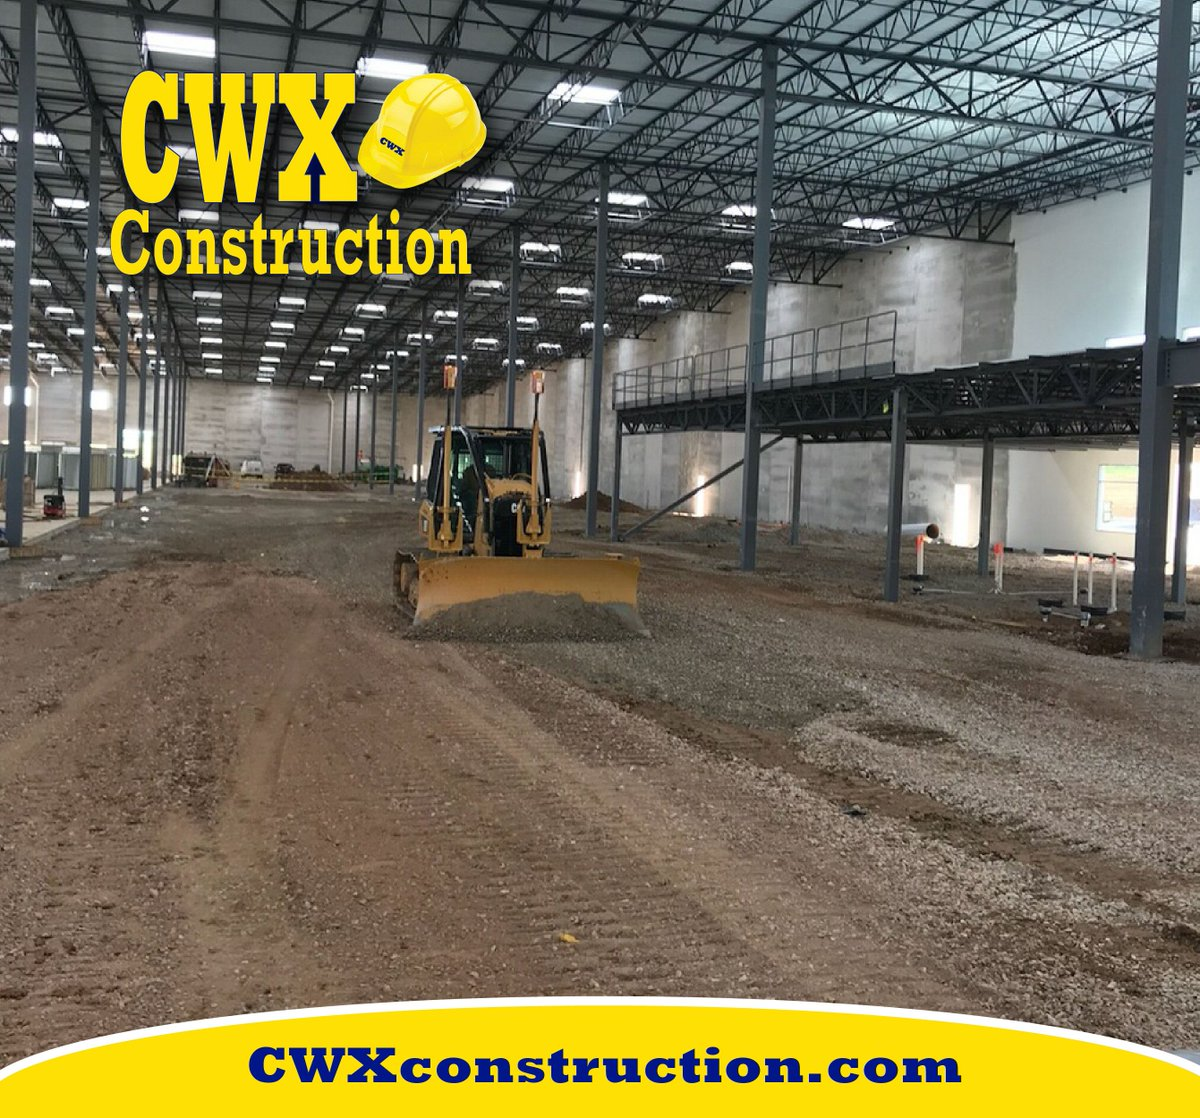 CWX Construction Group (@CWXconstruction) | Twitter